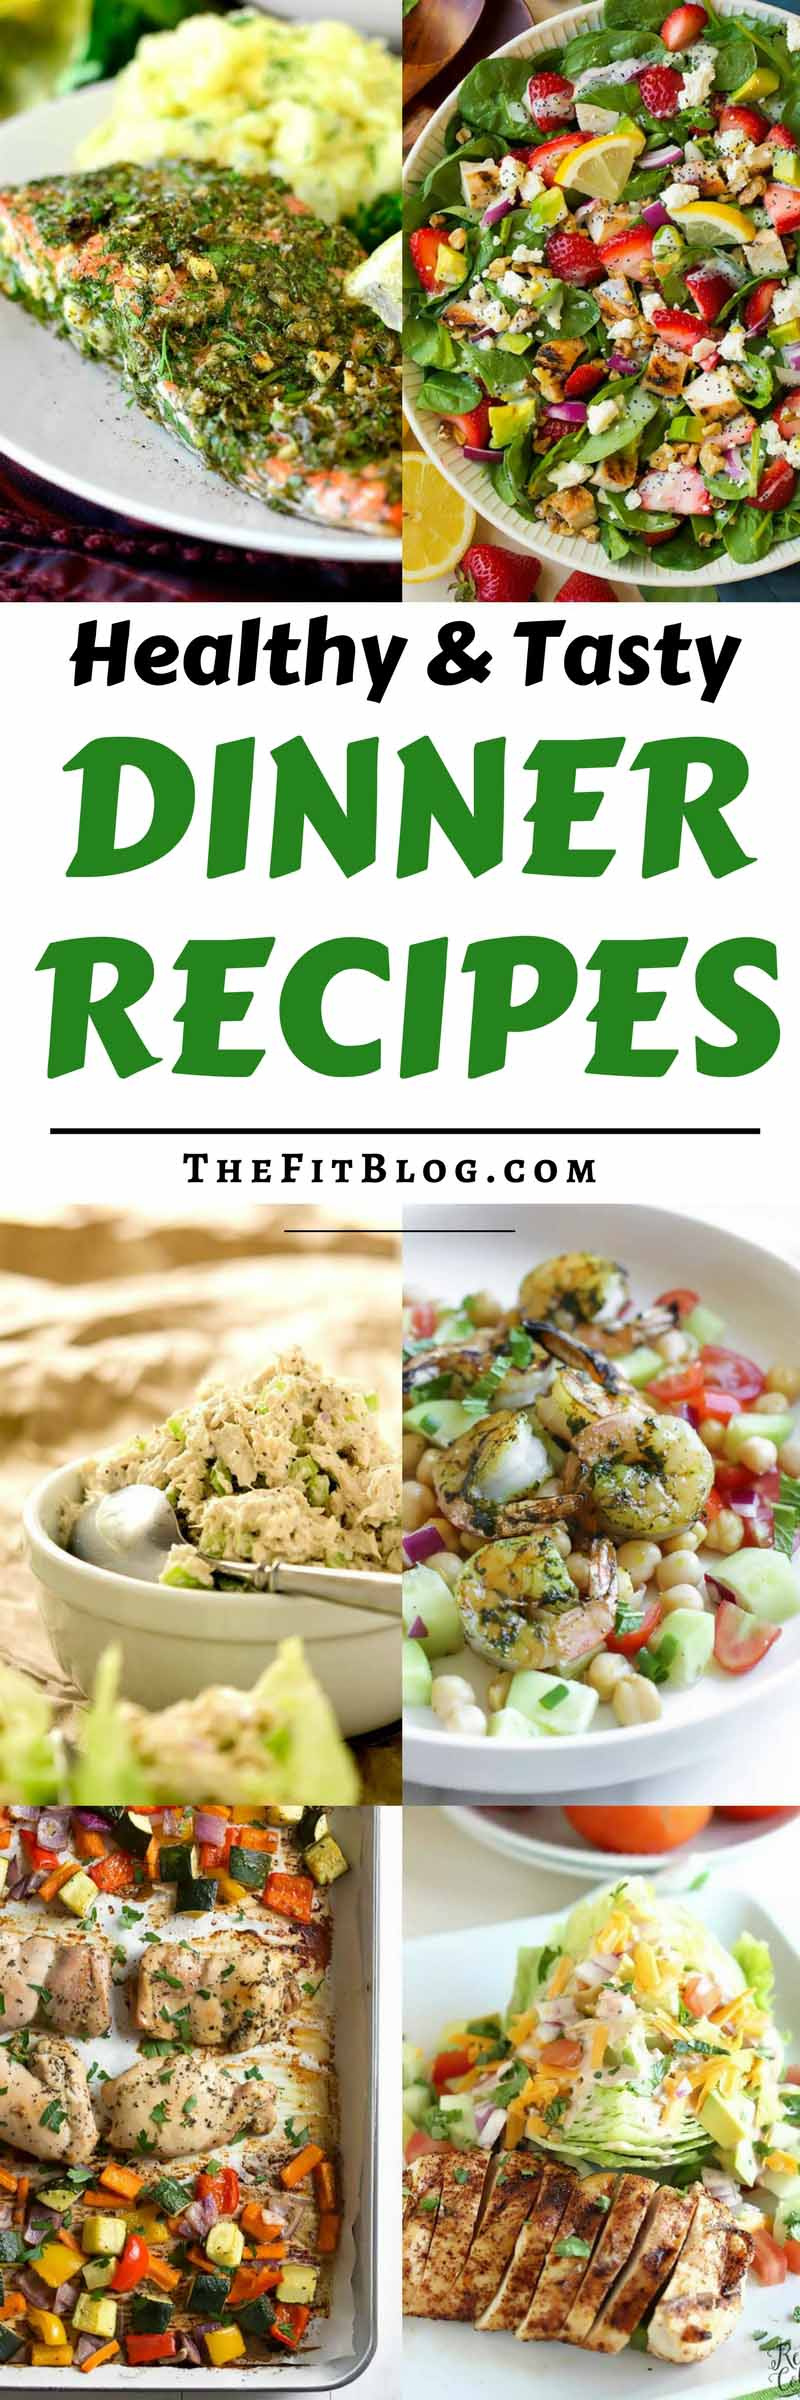 Some of these recipes are my own and some are from food blogs I follow, but all of them are healthy, tasty, and great for people with diabetes    high protein   low carb   sugar free   gluten free   diabetes friendly  